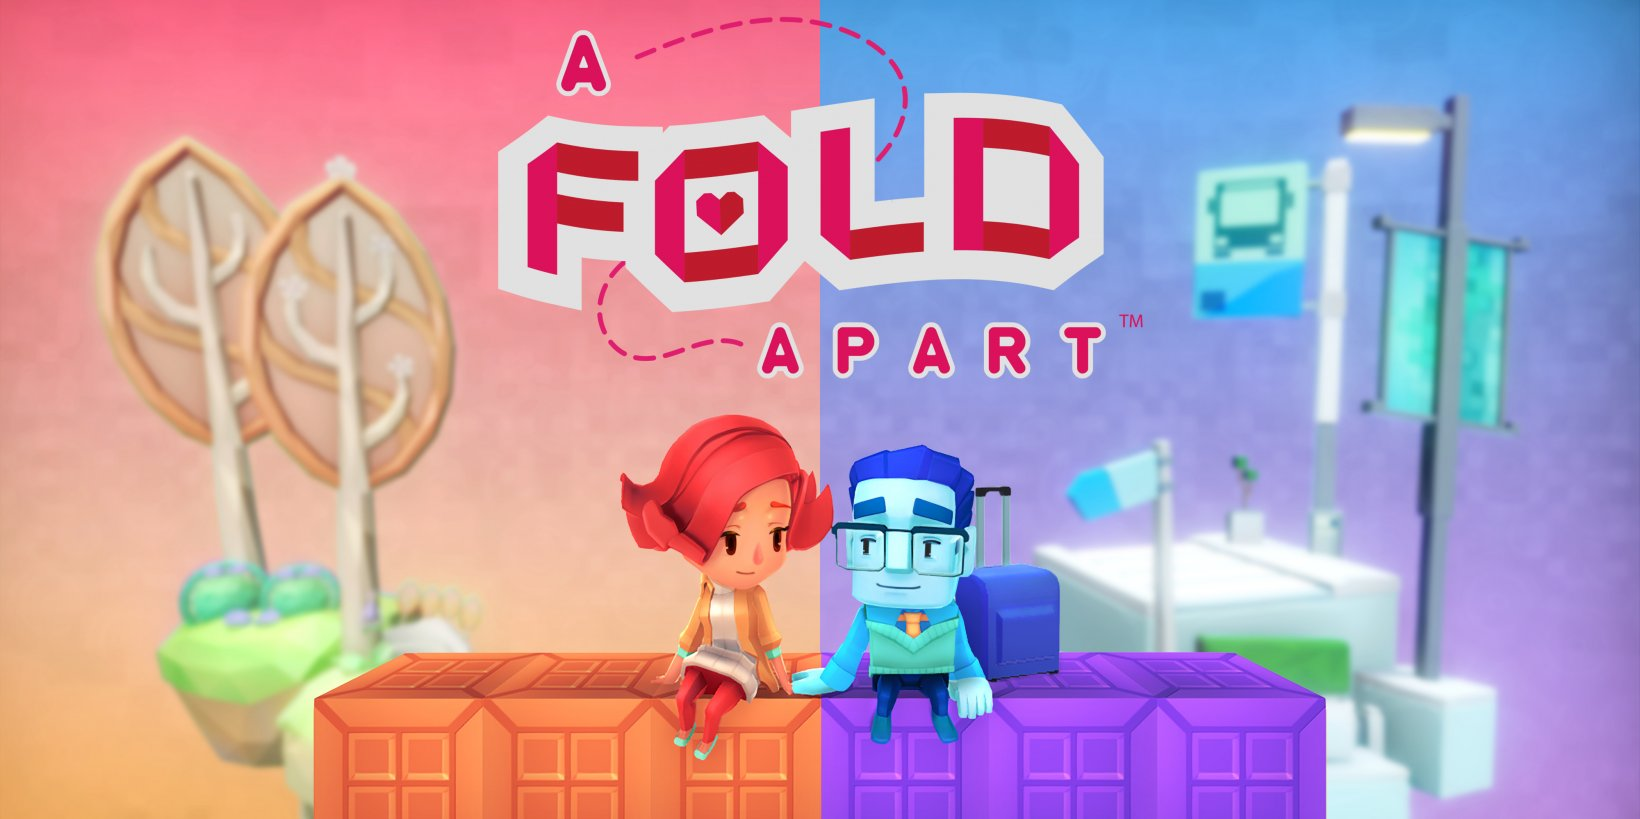 A Fold Apart, now available on Apple Arcade, is a heartfelt puzzler about the struggles of maintaining a long-distance relationship